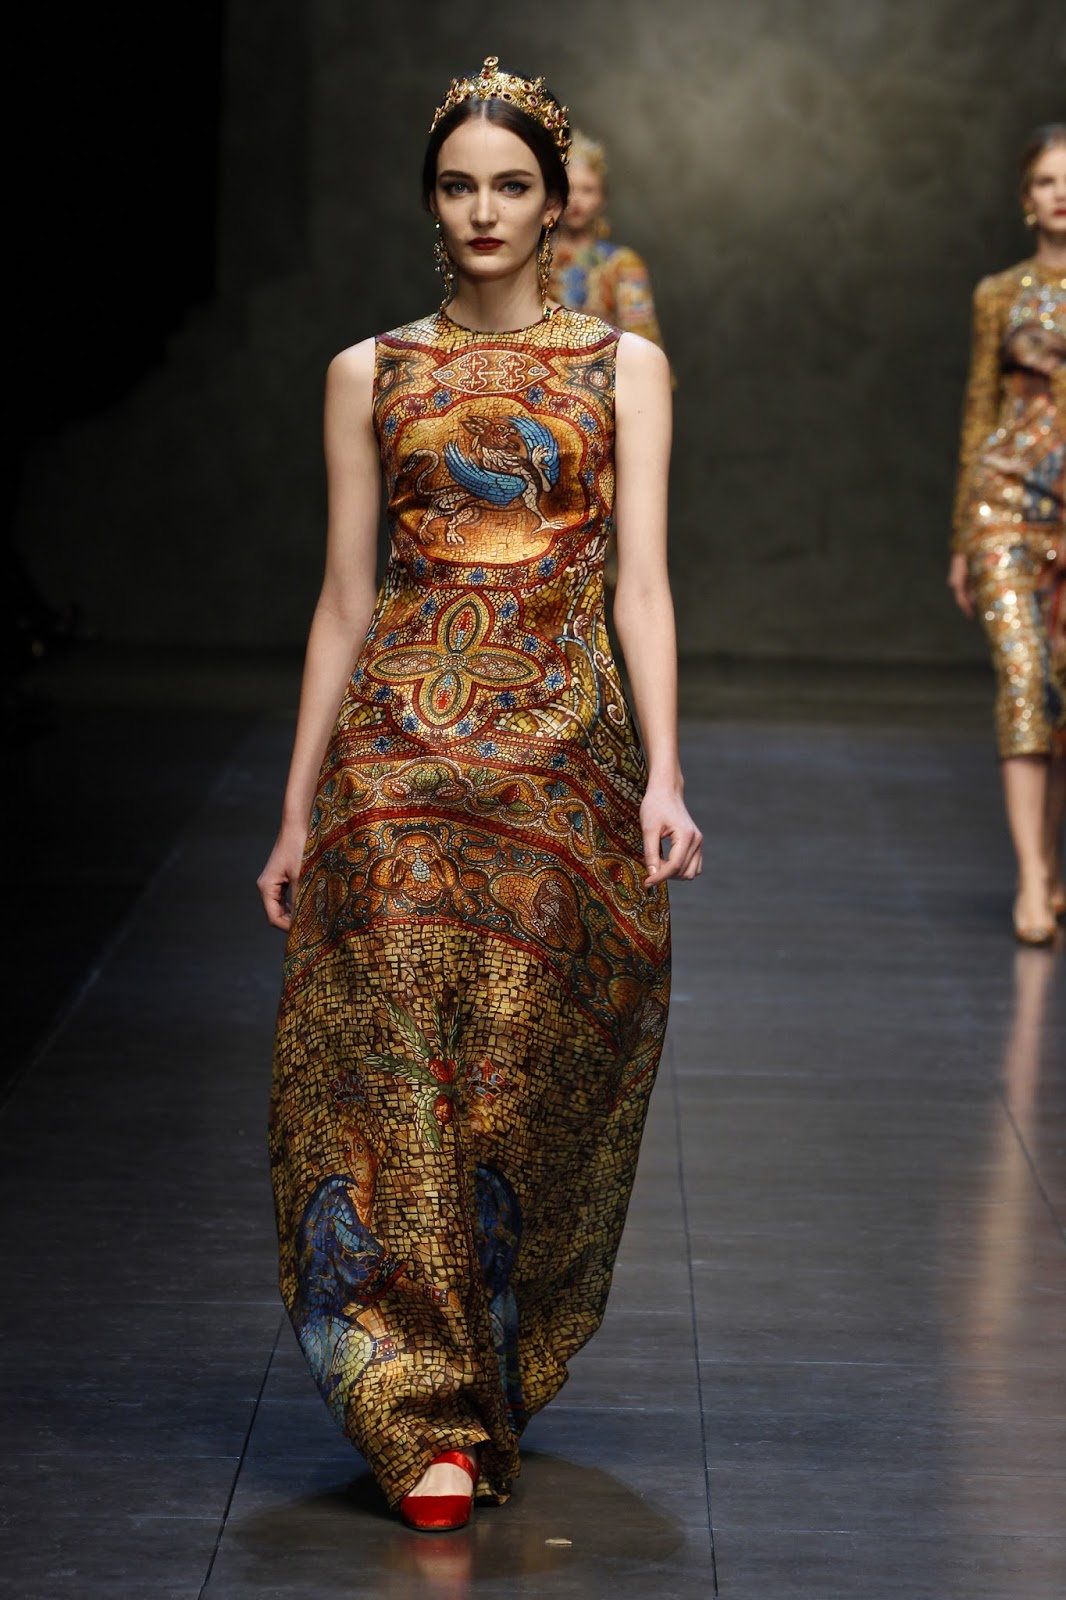 All the images were taken from official website of dolce amp gabbana